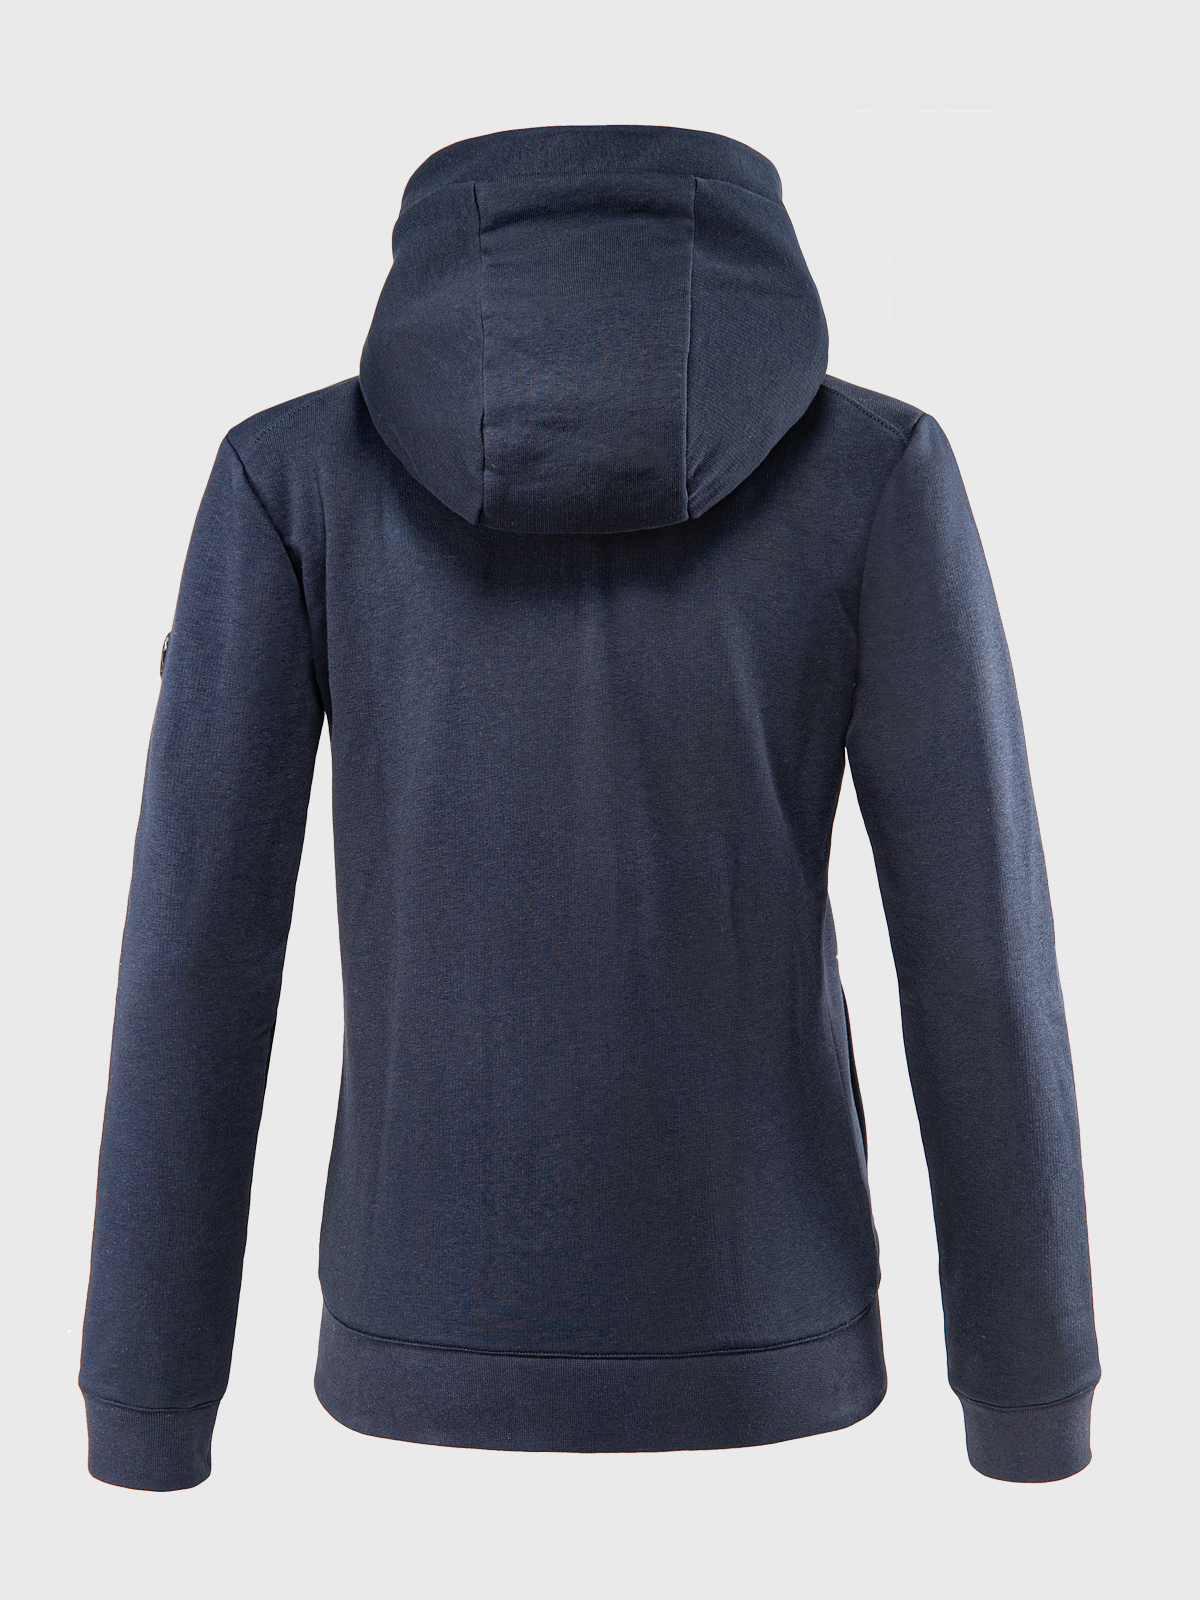 EQODE WOMEN'S FULL-ZIP FLEECE HOODIE 2